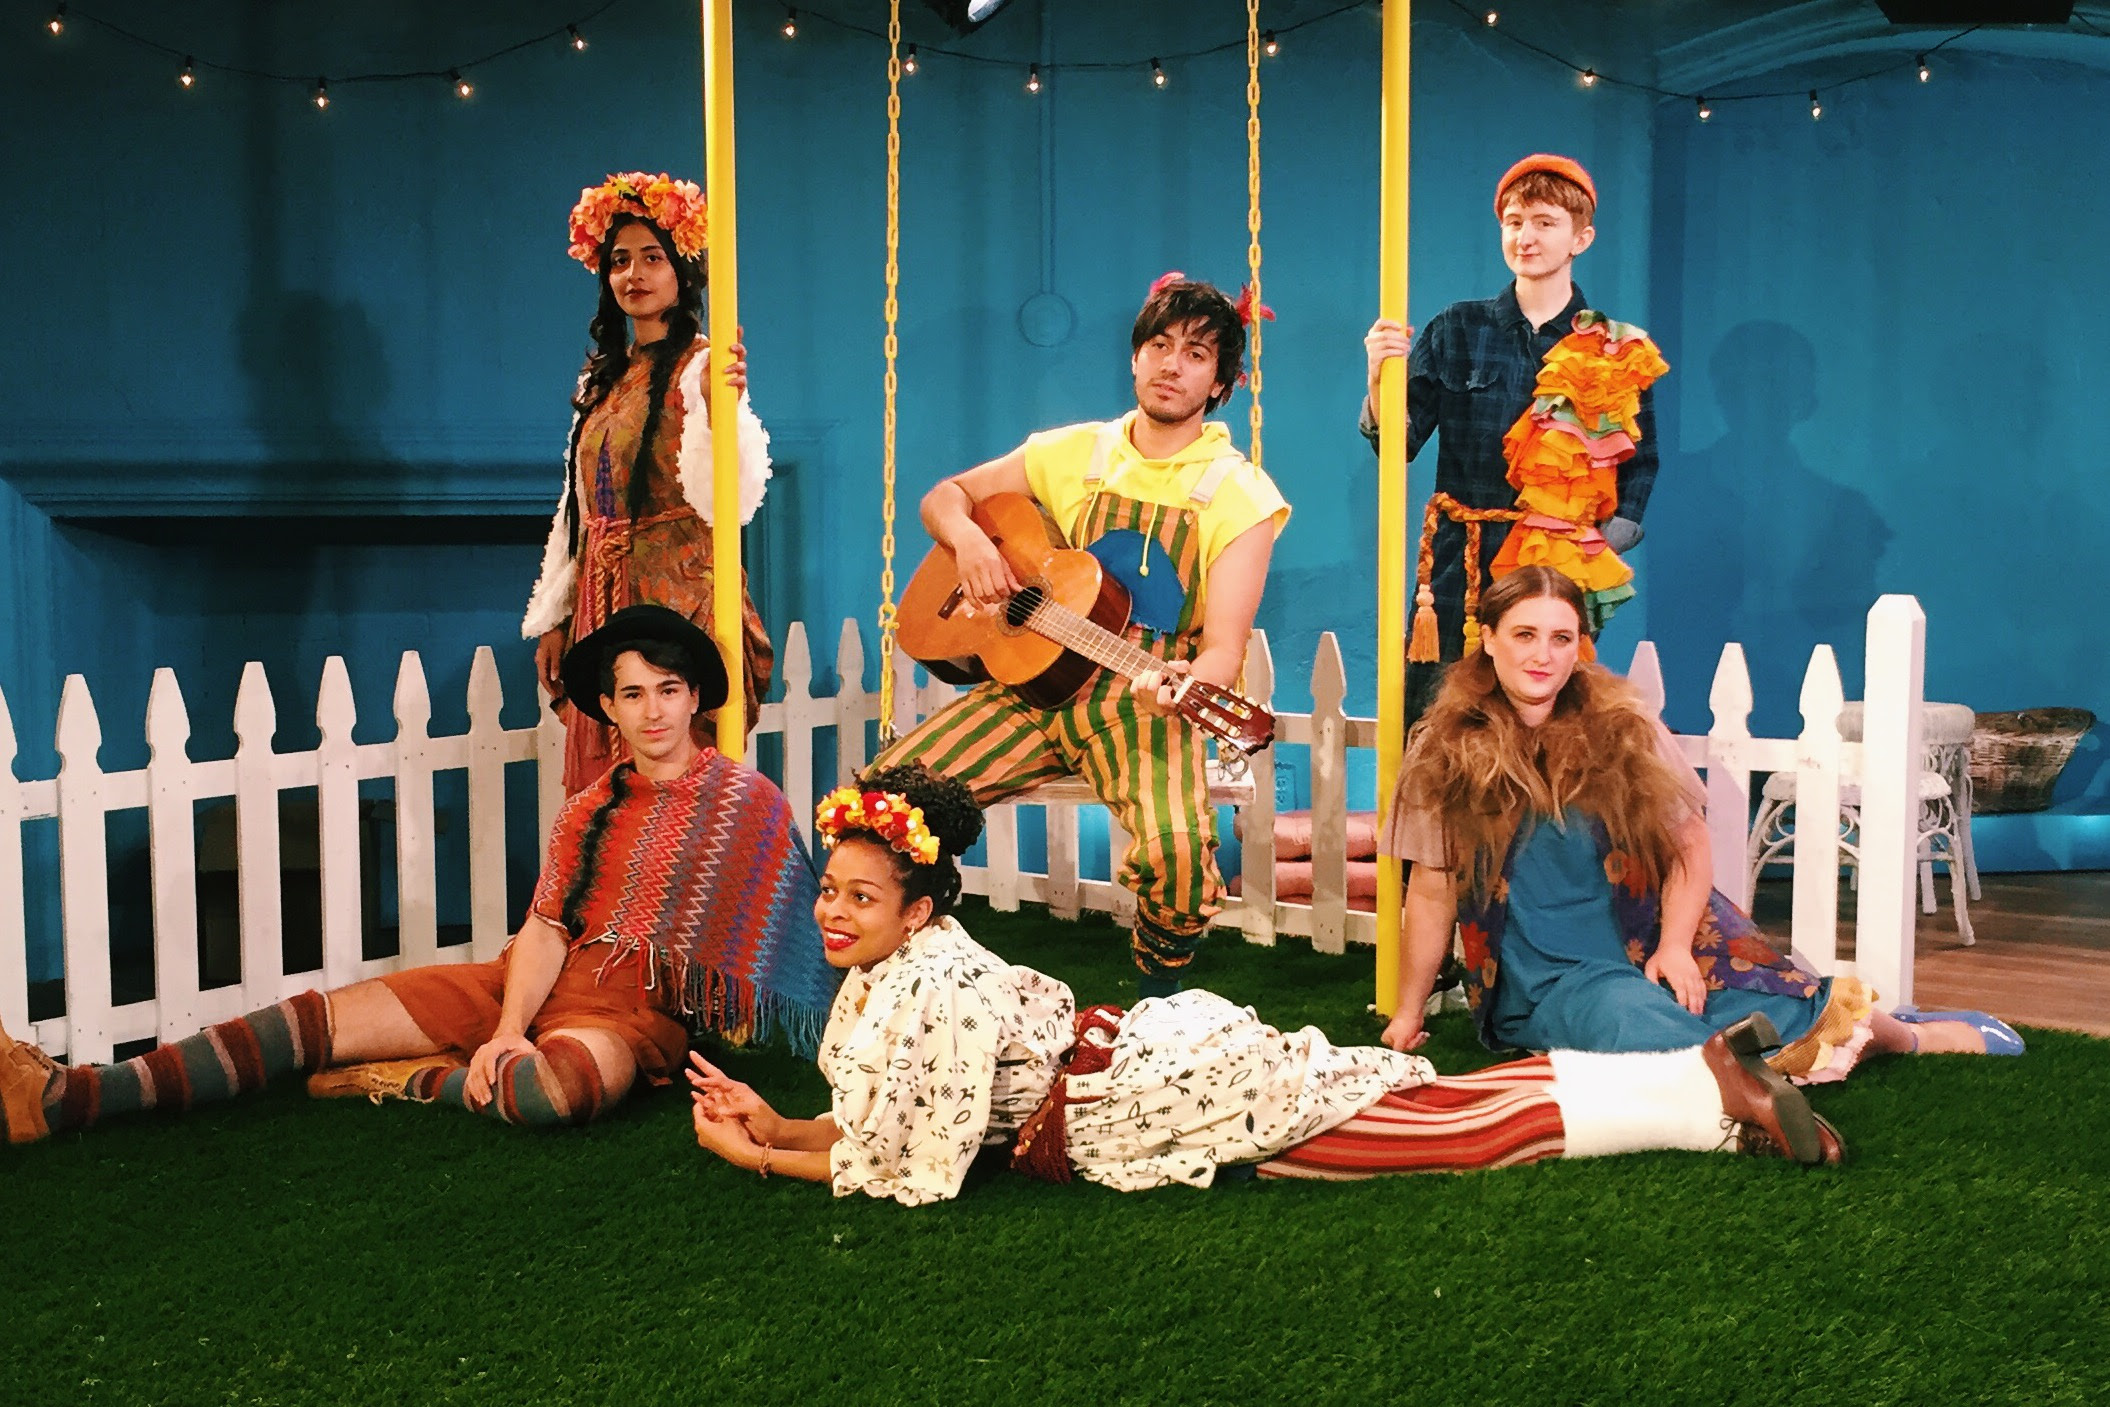 The Cast of The Swallow and the Tomcat (front: Julian Sanchez, Adrienne Wells, Zoe Mann; rear: Anula Navlekar, Dario Ladani Sanchez, Reed Northrup); Set: Elsa GibsonBraden; Costumes: Stephanie Bahniuk; Lighting: Evan Anderson